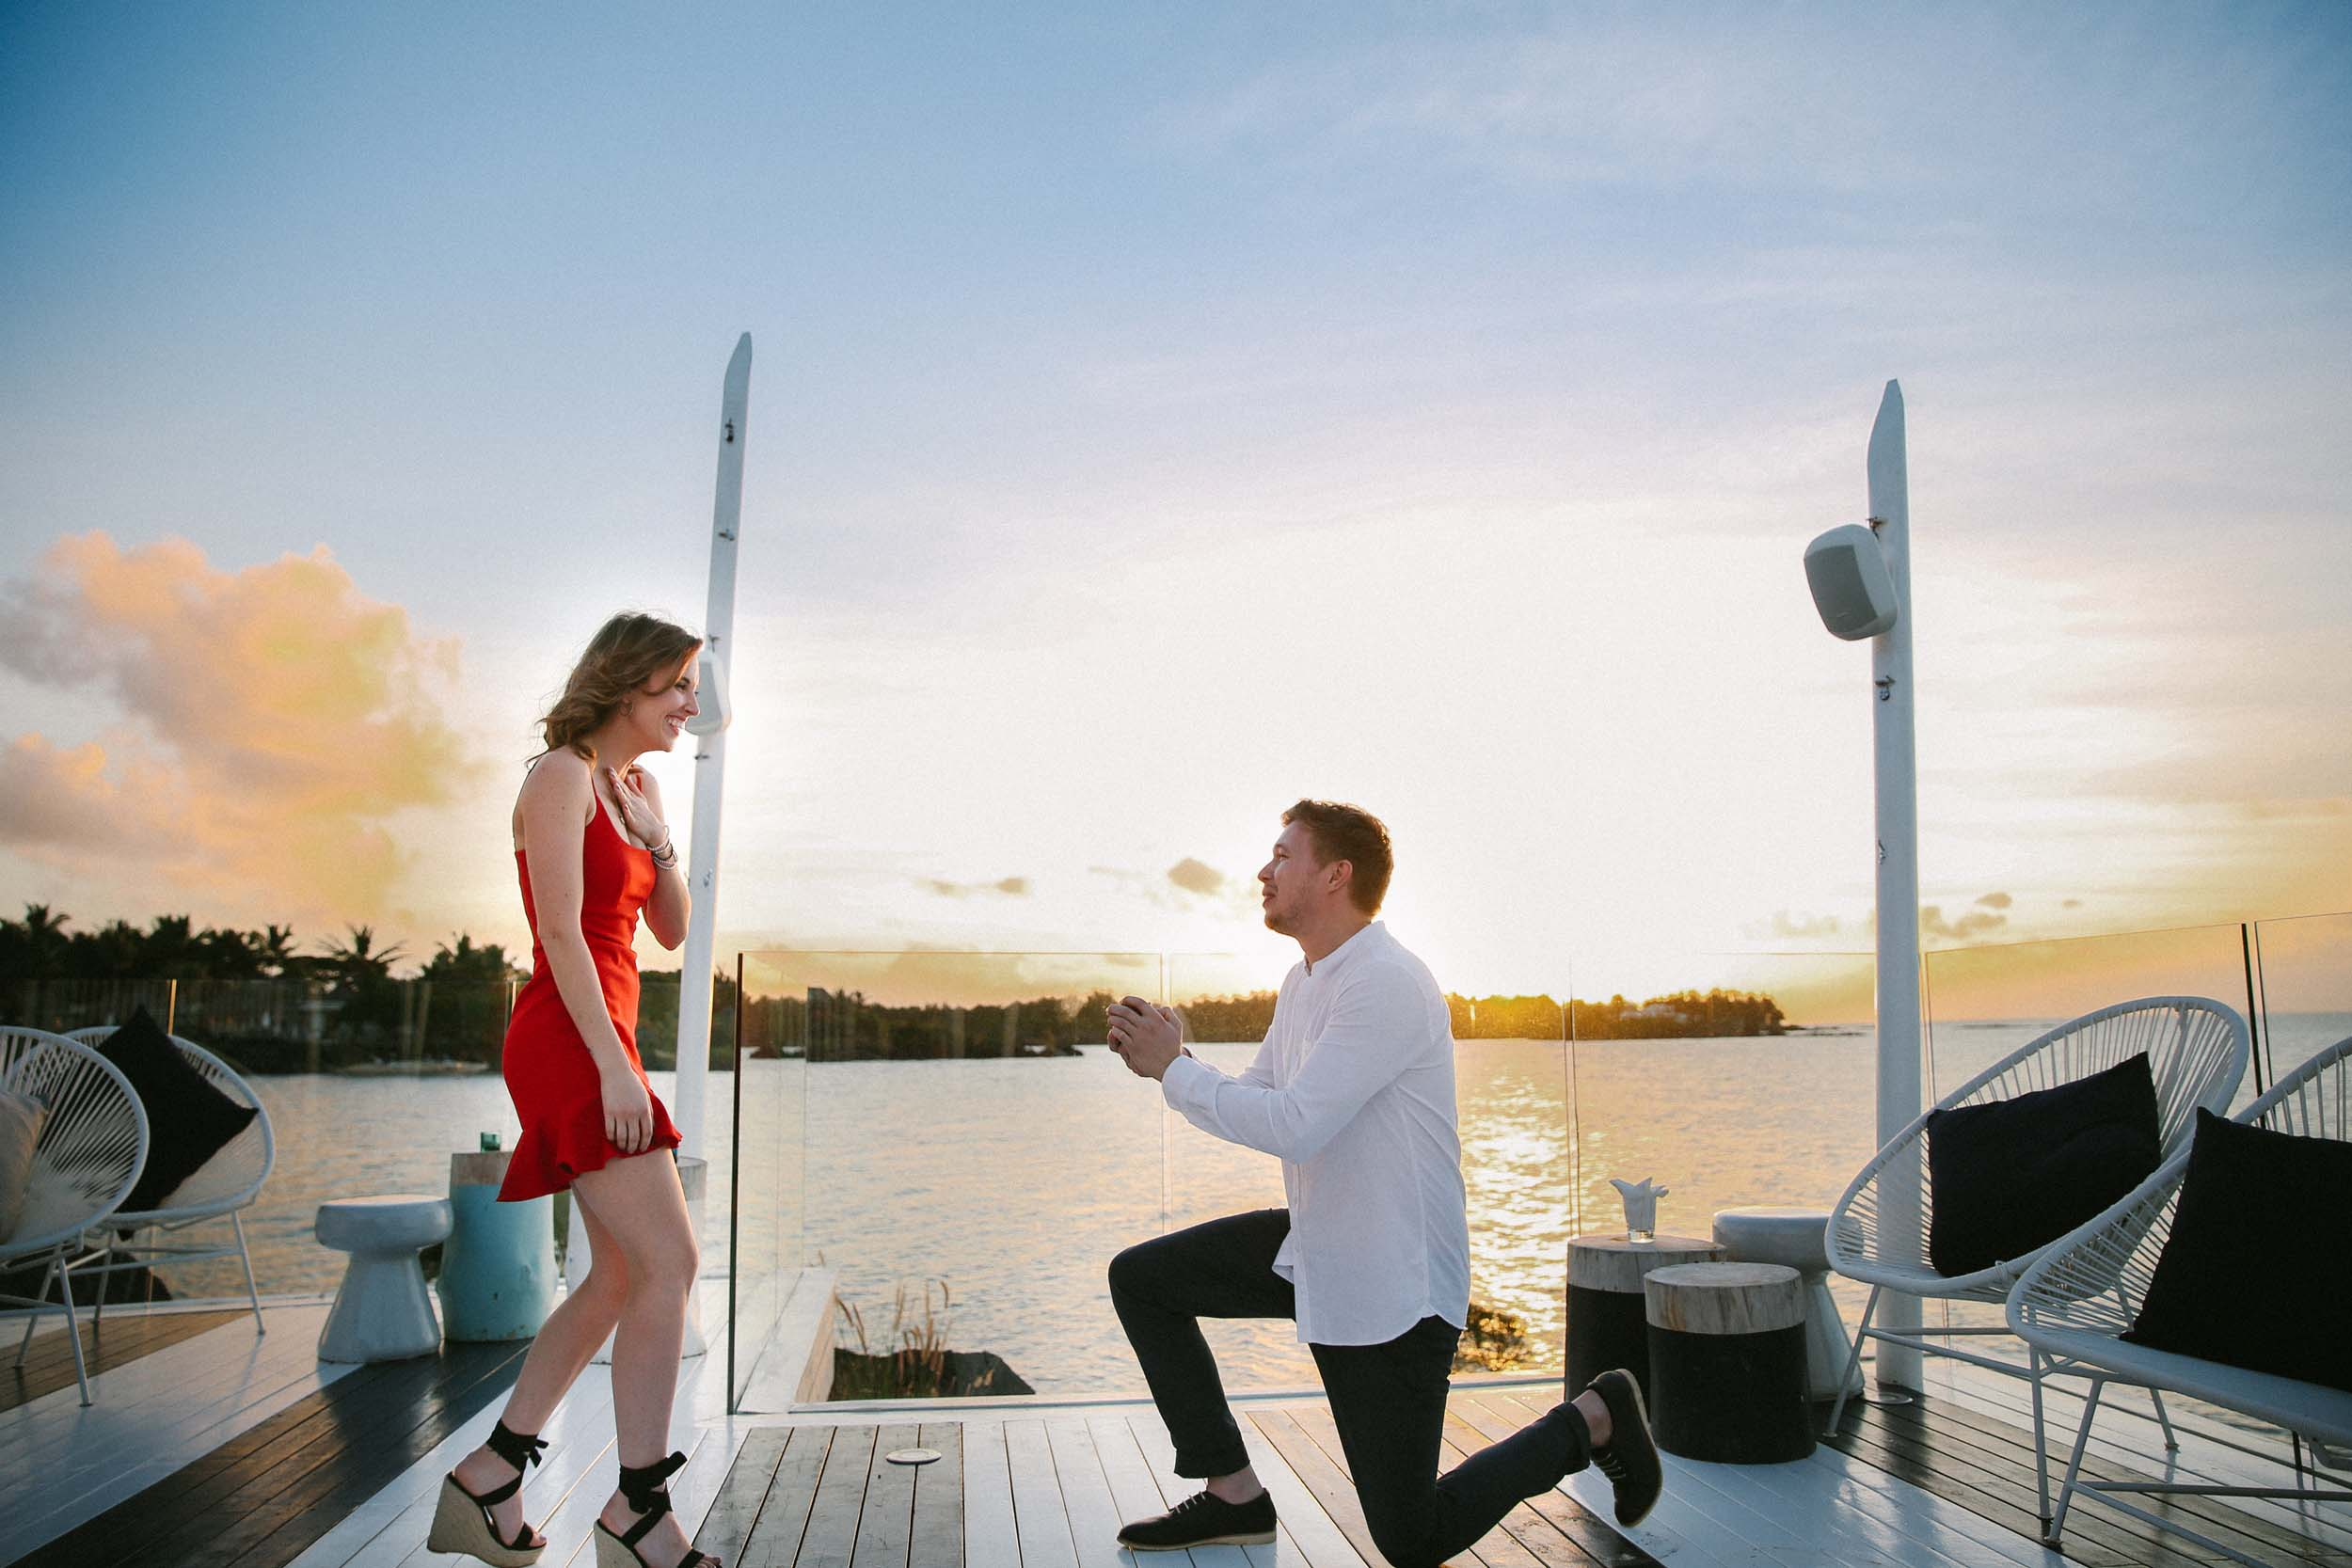 How to Plan a Proposal in Paradise